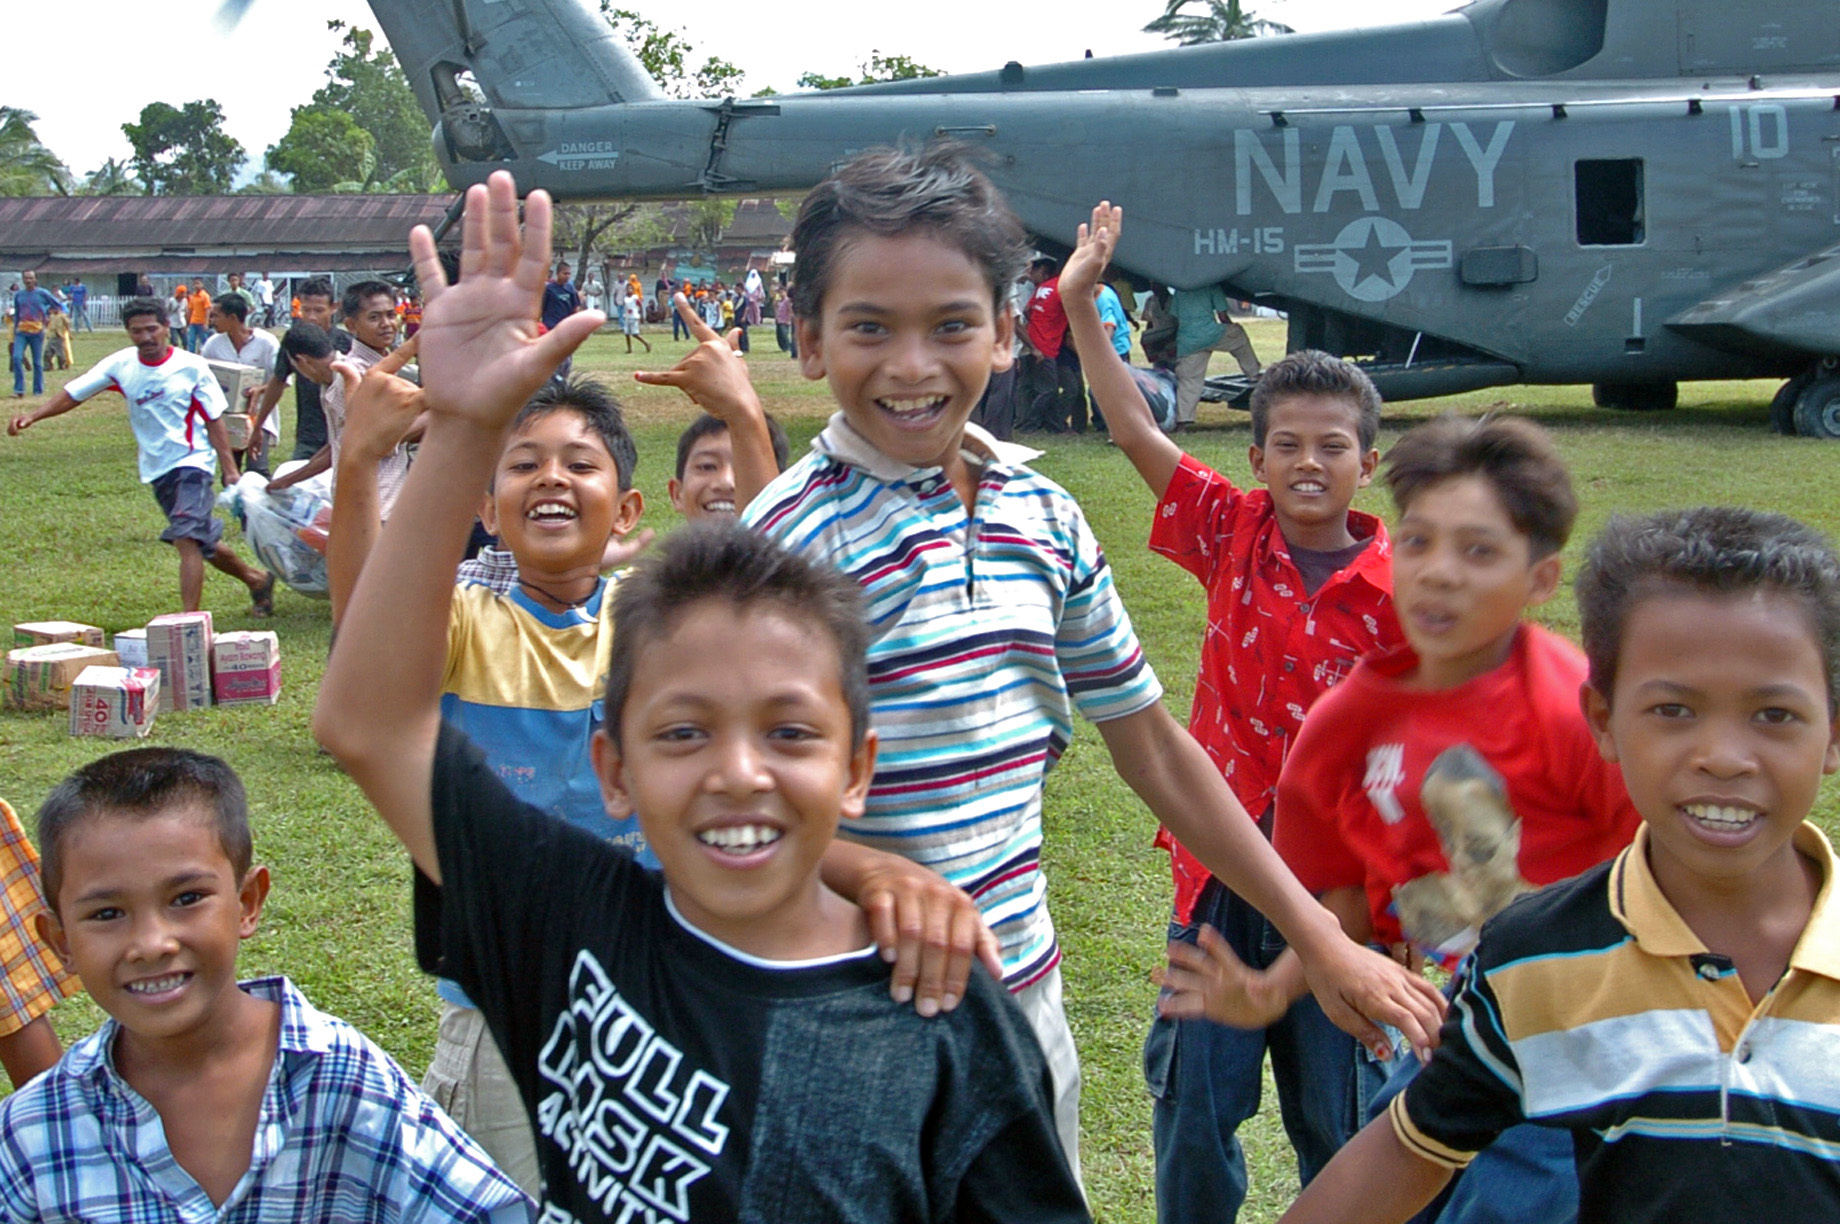 Navy 050123 n 9885m 136 indonesian children gather around a mh 53e sea